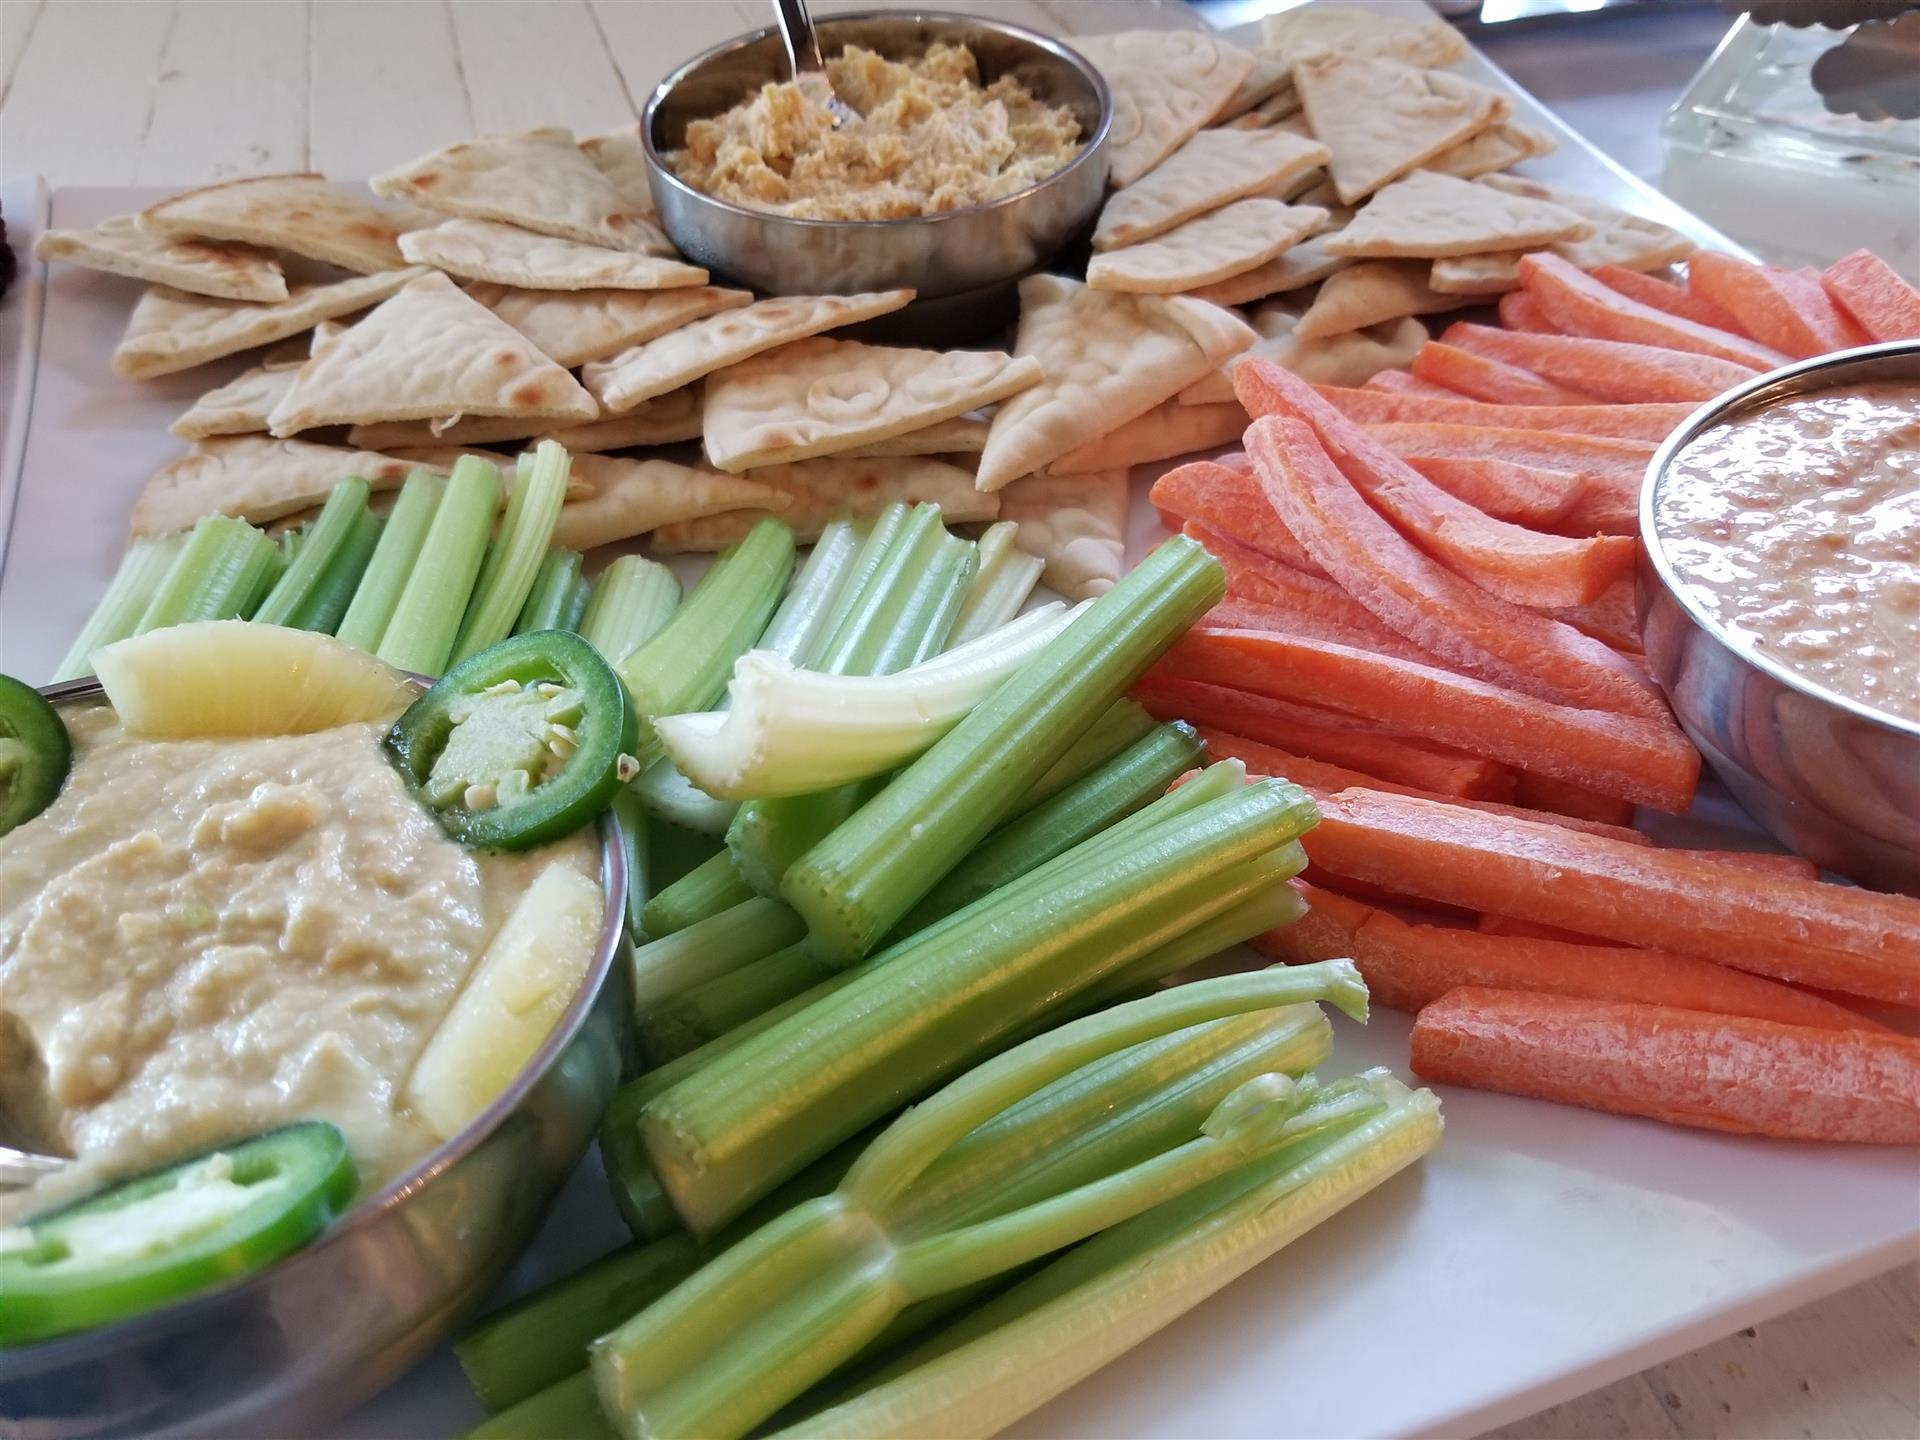 tray with celery and carrots and dipping sauce, with crackers and dipping sauce